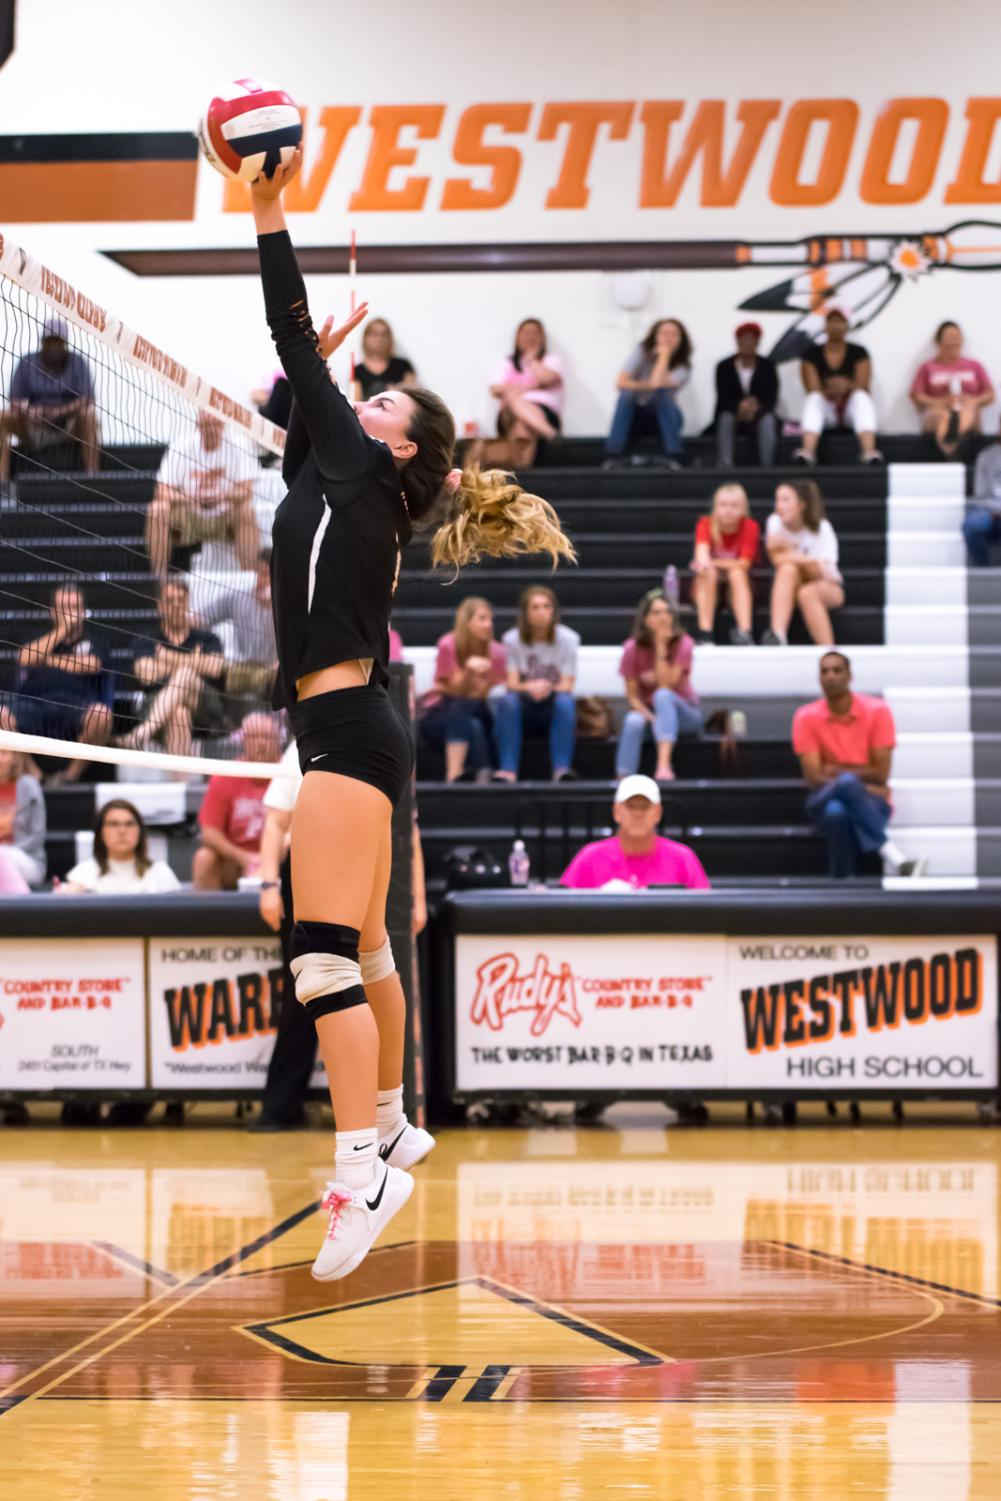 Jumping+in+the+air%2C+Phia+Parent+%2722+pushes+the+ball+over+the+net.+The+Lady+Warriors+took+the+lead+early+on+during+the+second+set.